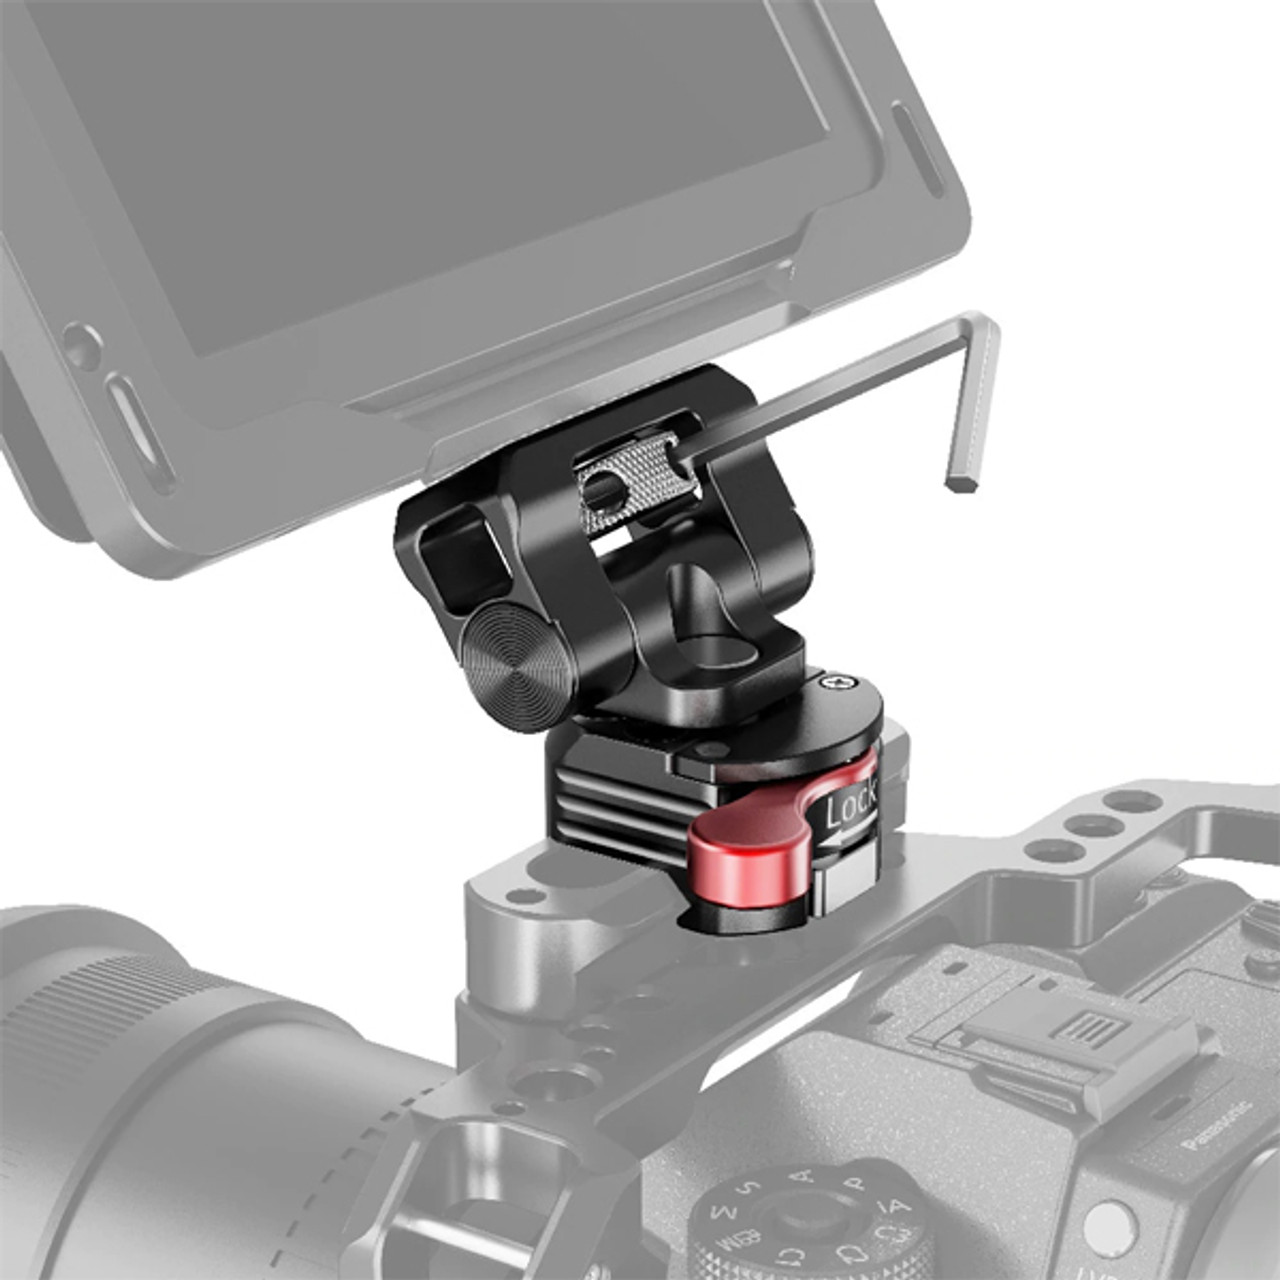 SmallRig Swivel and Tilt Monitor Mount with NATO Clamp (BSE2347)